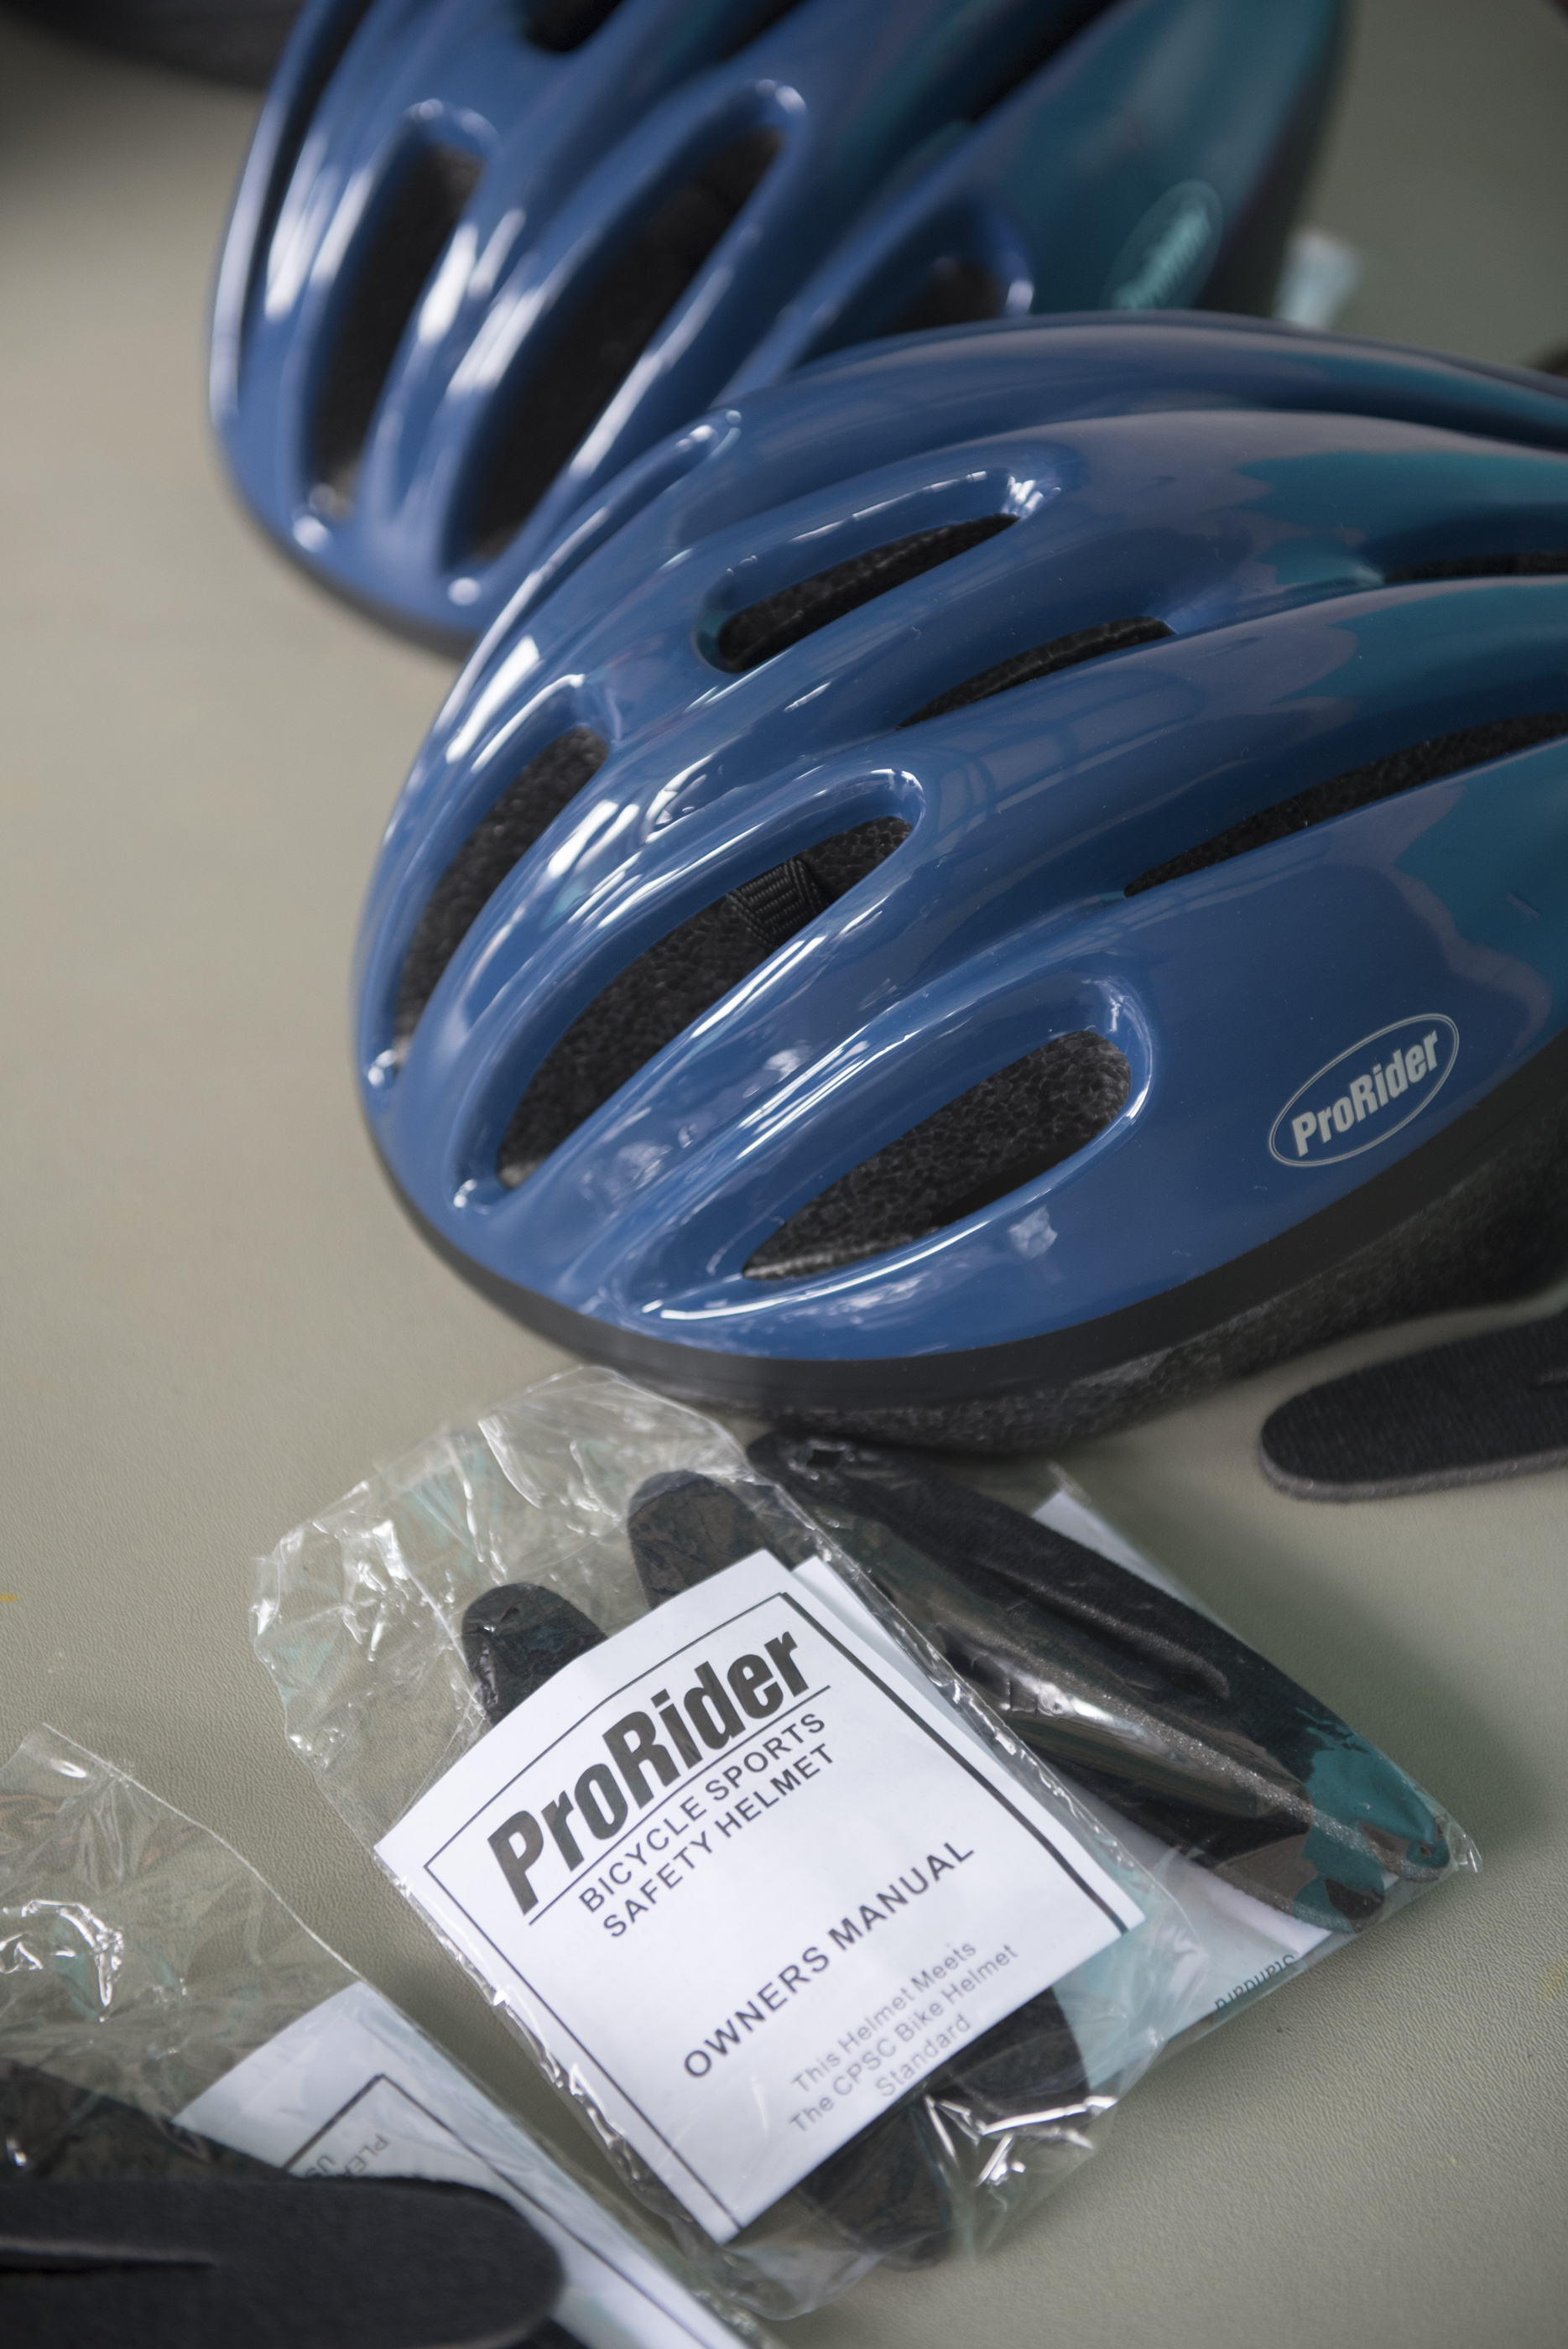 Bicycle helmets to be given away are shown at Black Mountain Recreation Center in Henderson, Saturday, July 18, 2015.(Jason Ogulnik/Las Vegas Review-Journal)